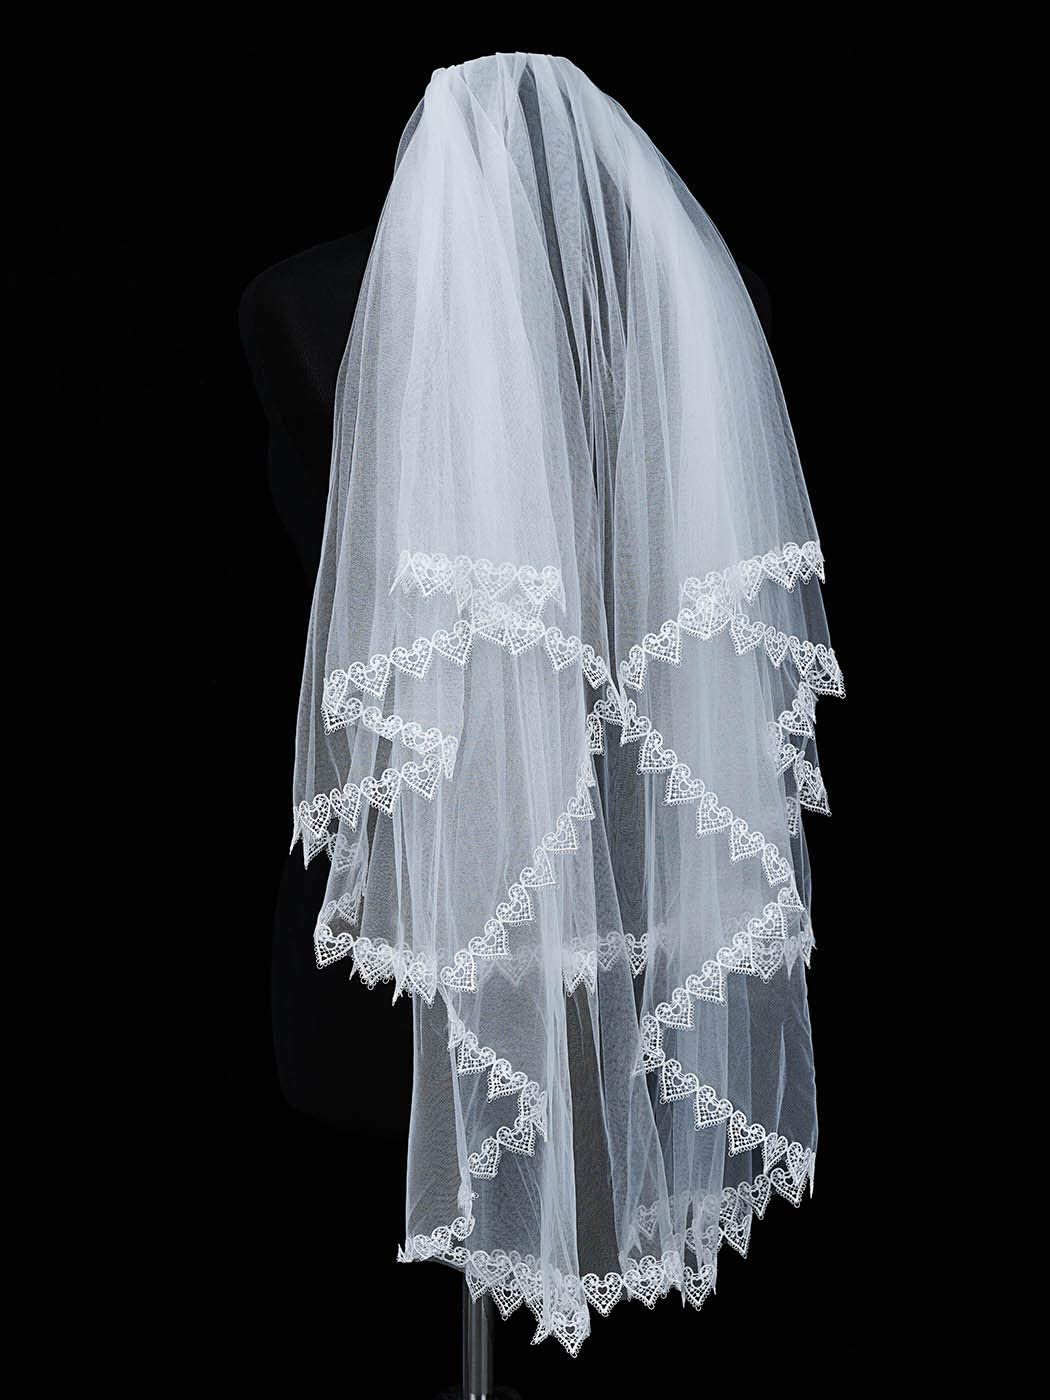 Unicra 2 Tiers Bride Wedding Veil White Short Elbow Length Bridal Tulle with Lace Edge and Comb 25.6/33.5Inch